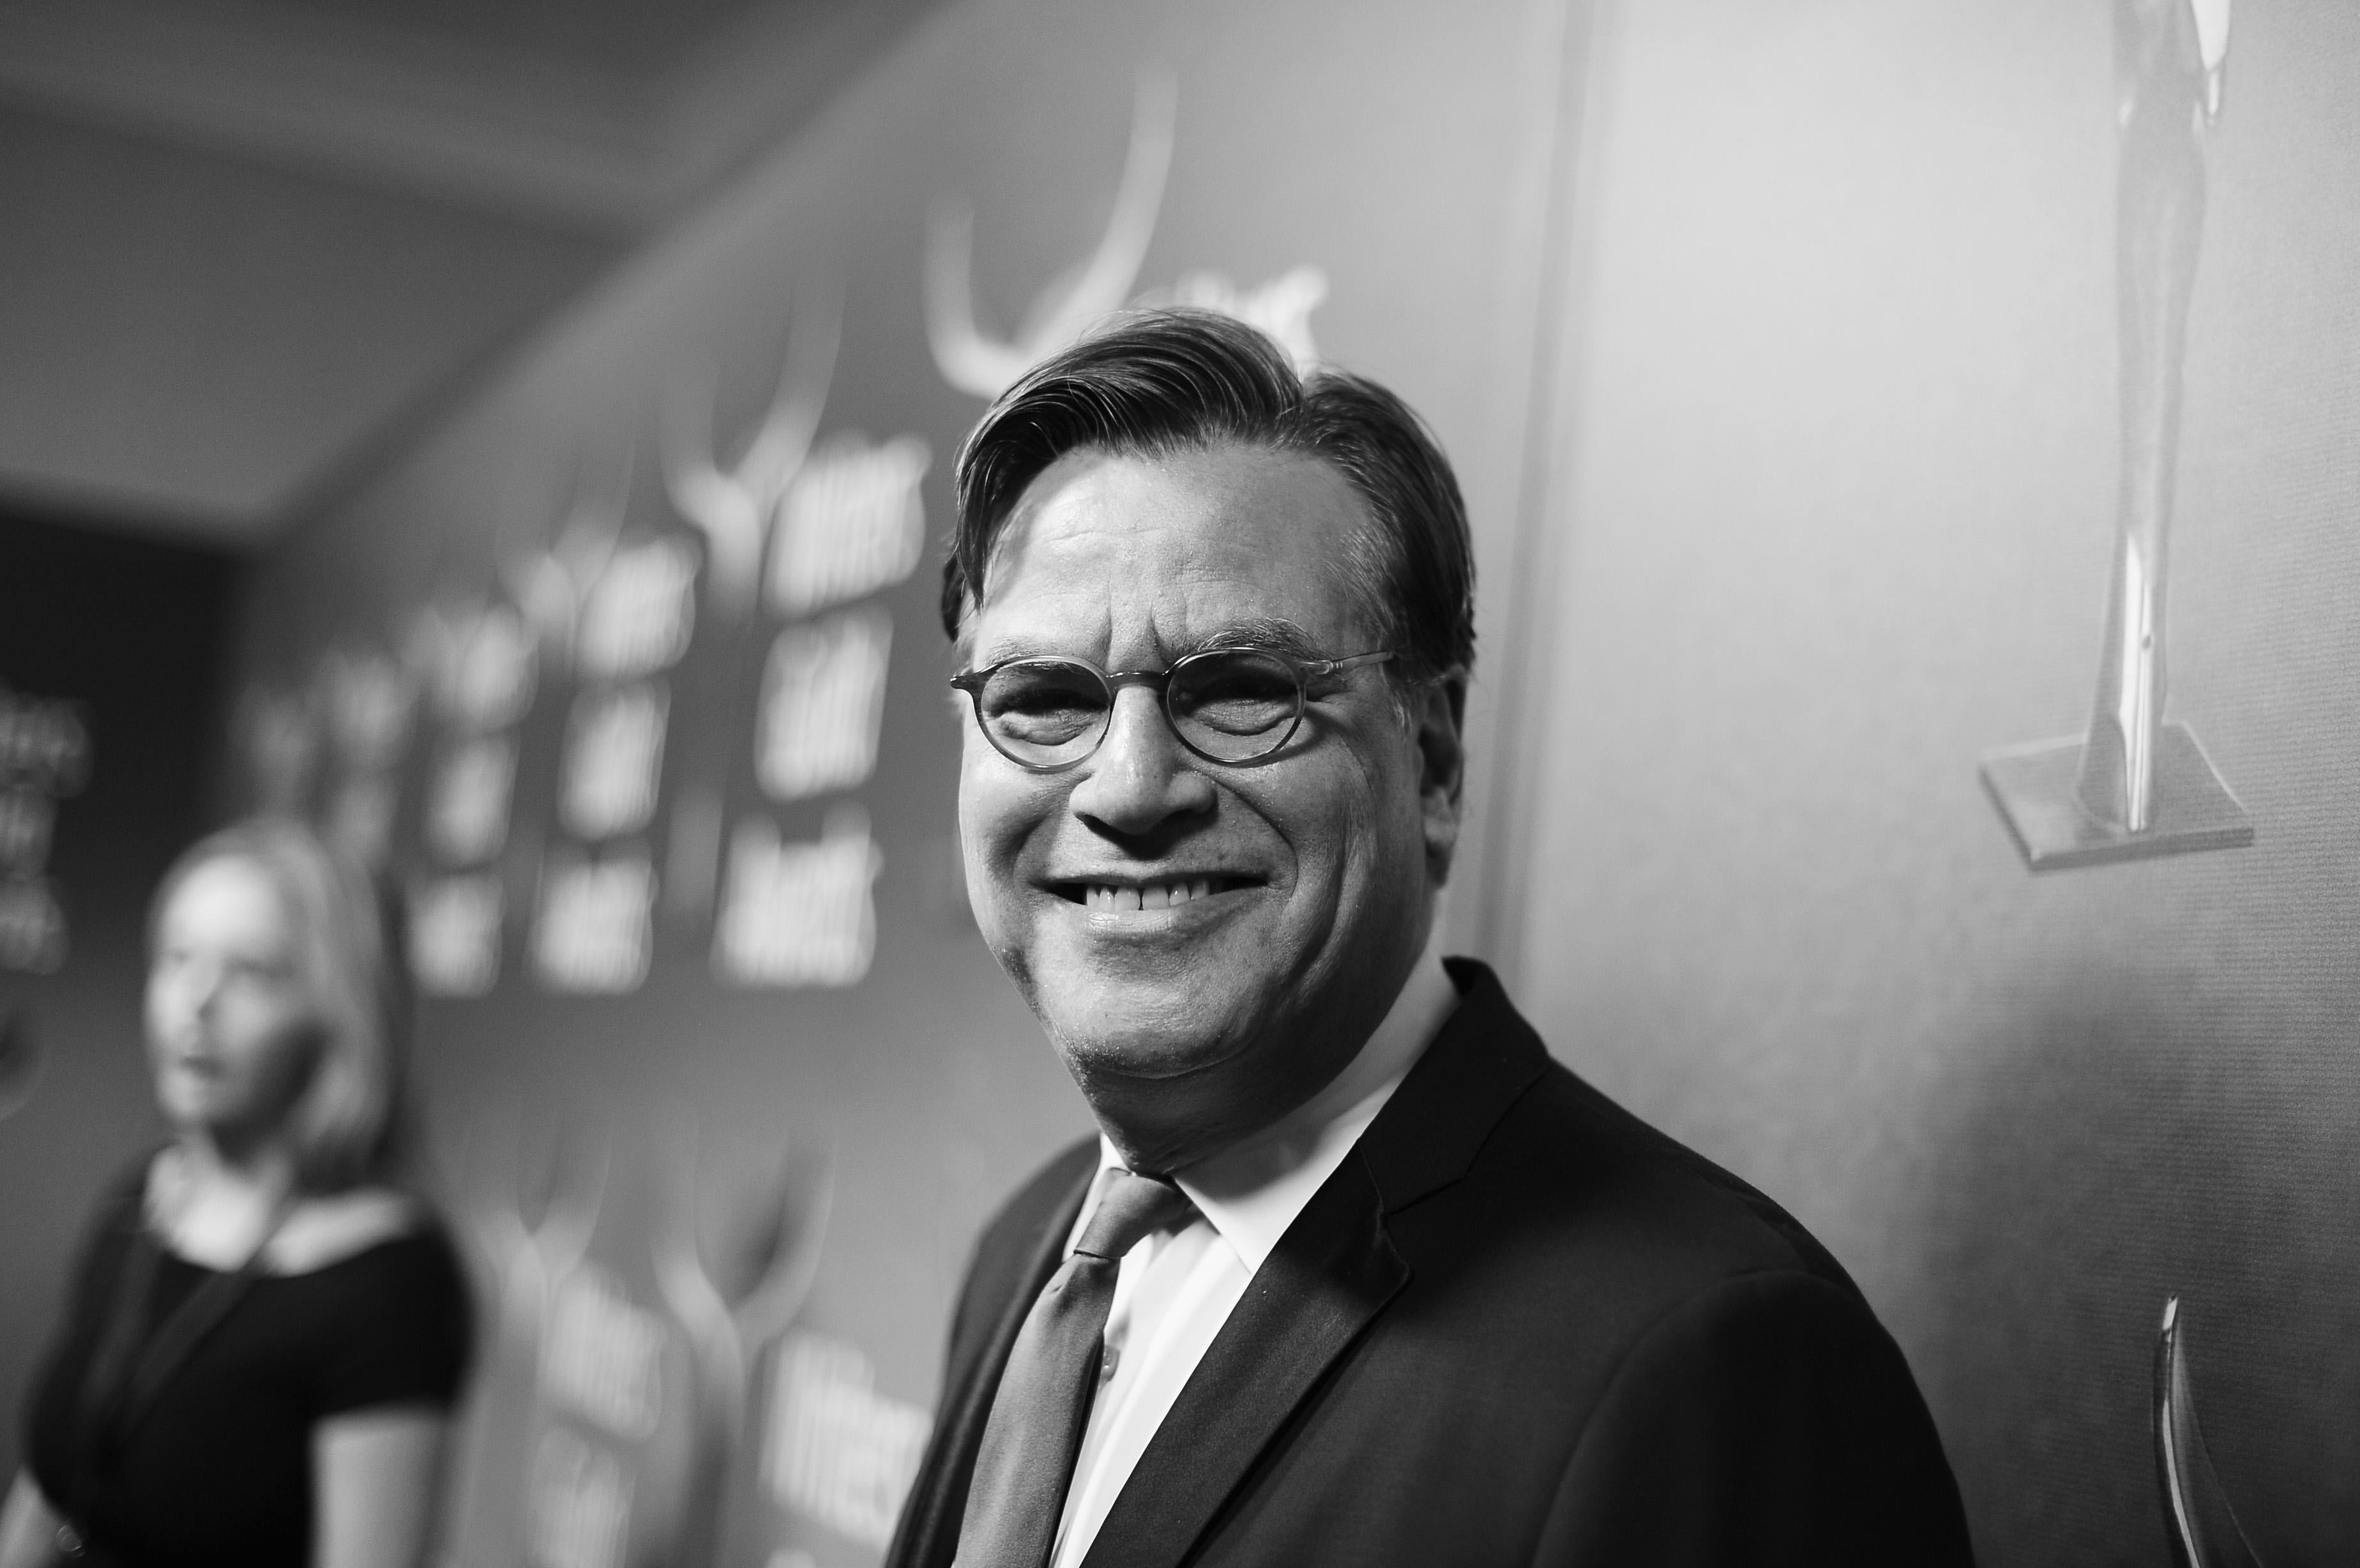 A black and white image. Writer-director Aaron Sorkin attends the 2018 Writers Guild Awards L.A. Ceremony at The Beverly Hilton Hotel on February 11, 2018 in Beverly Hills, California.